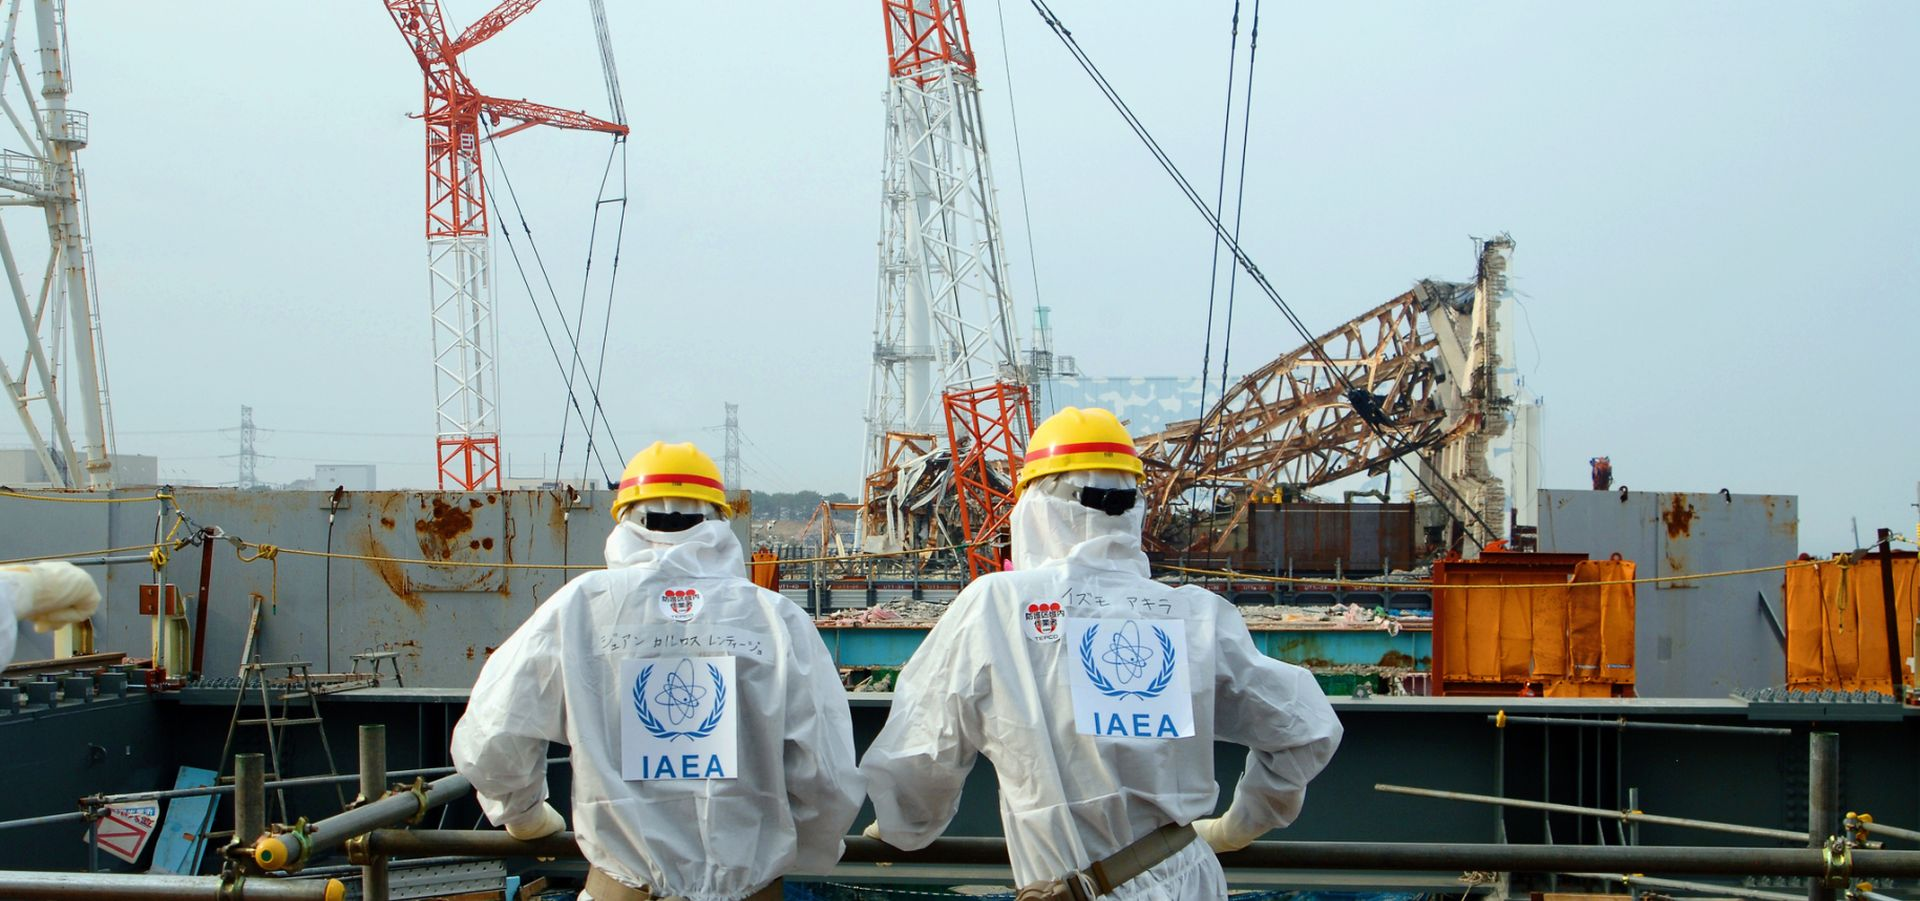 Two IAEA experts examine recovery work on top of Unit 4 of TEPCO's Fukushima Daiichi Nuclear Power Station on 17 April 2013 as part of a mission to review Japan's plans to decommission the facility. Photo Credit: Greg Webb / IAEA ( CC BY SA 2) https://www.flickr.com/photos/iaea_imagebank/8657963686